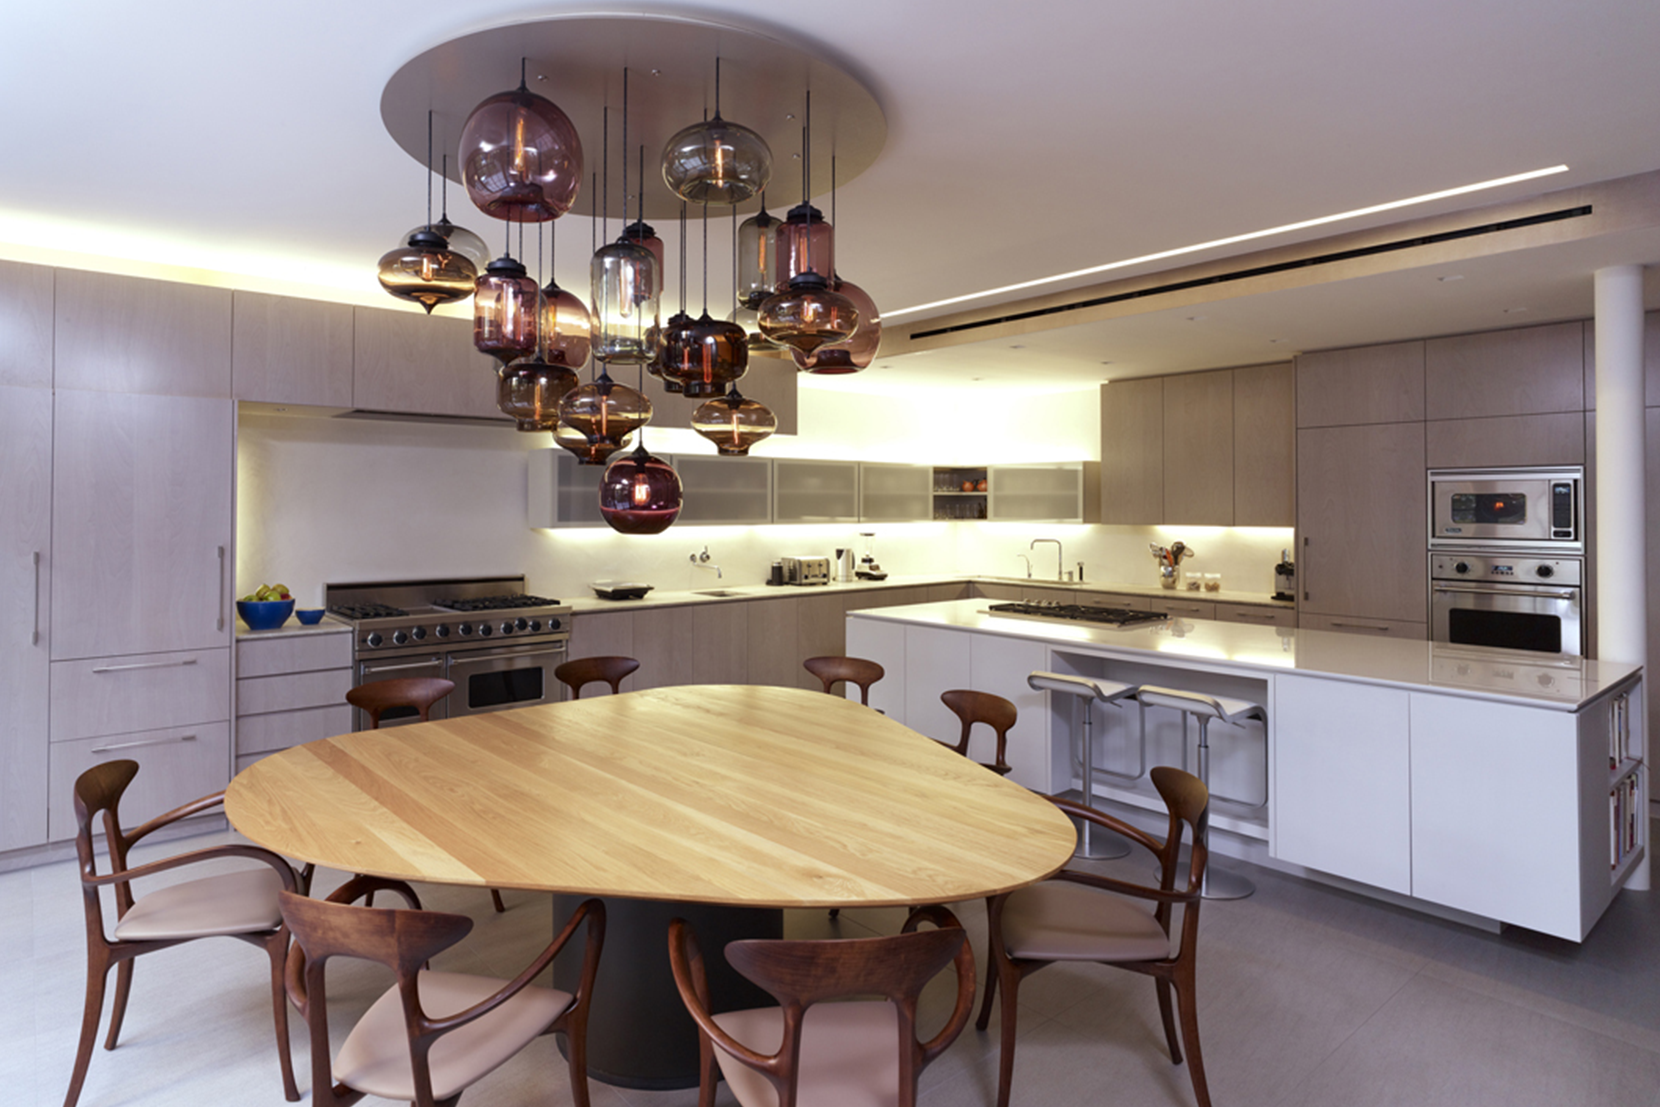 Lighting-Project-Pages_0006s_0010_Custom-Modern-Dining-Room-Pendant-Lighting-Chandelier.png